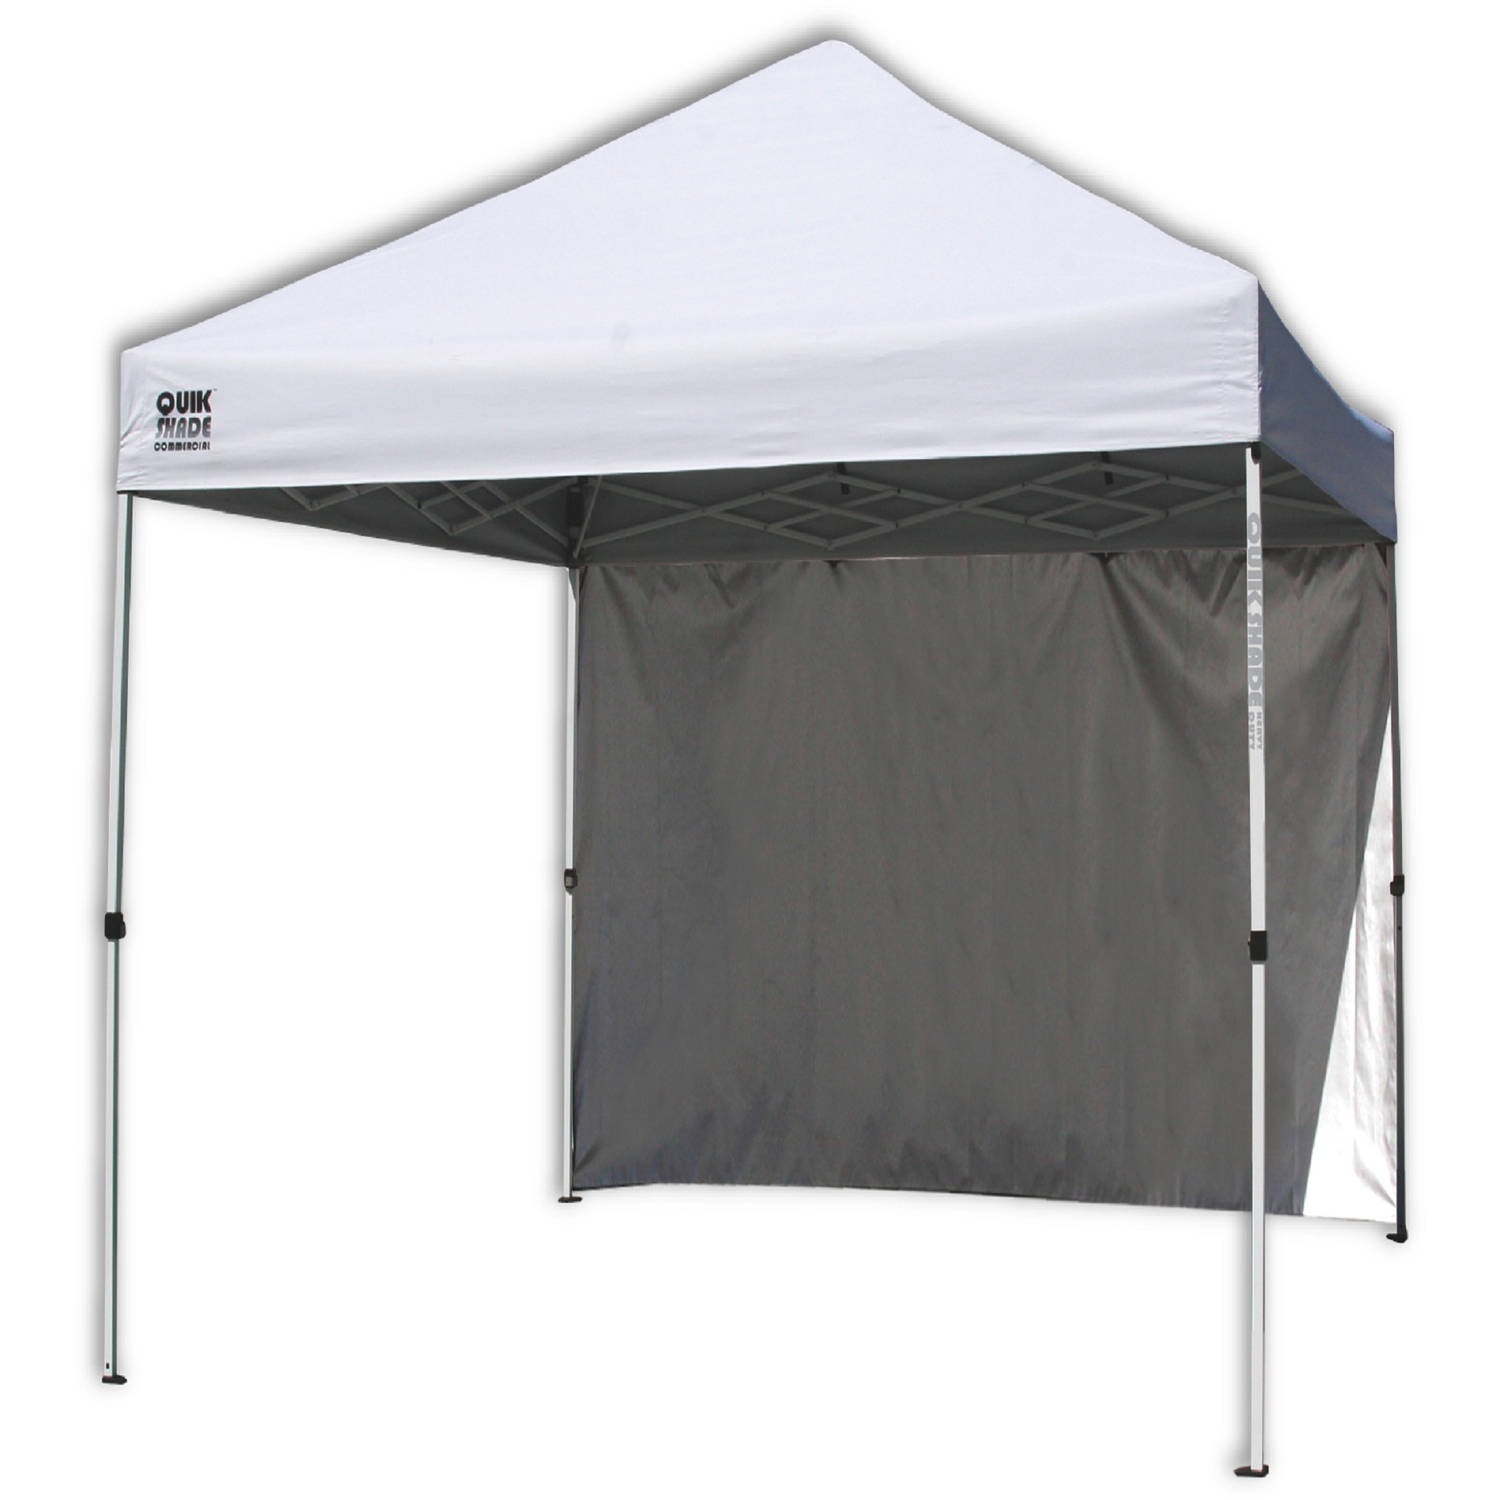 Quik-Shade Mercantile C100NL 10' x 10' Instant Canopy with Wall Panel,